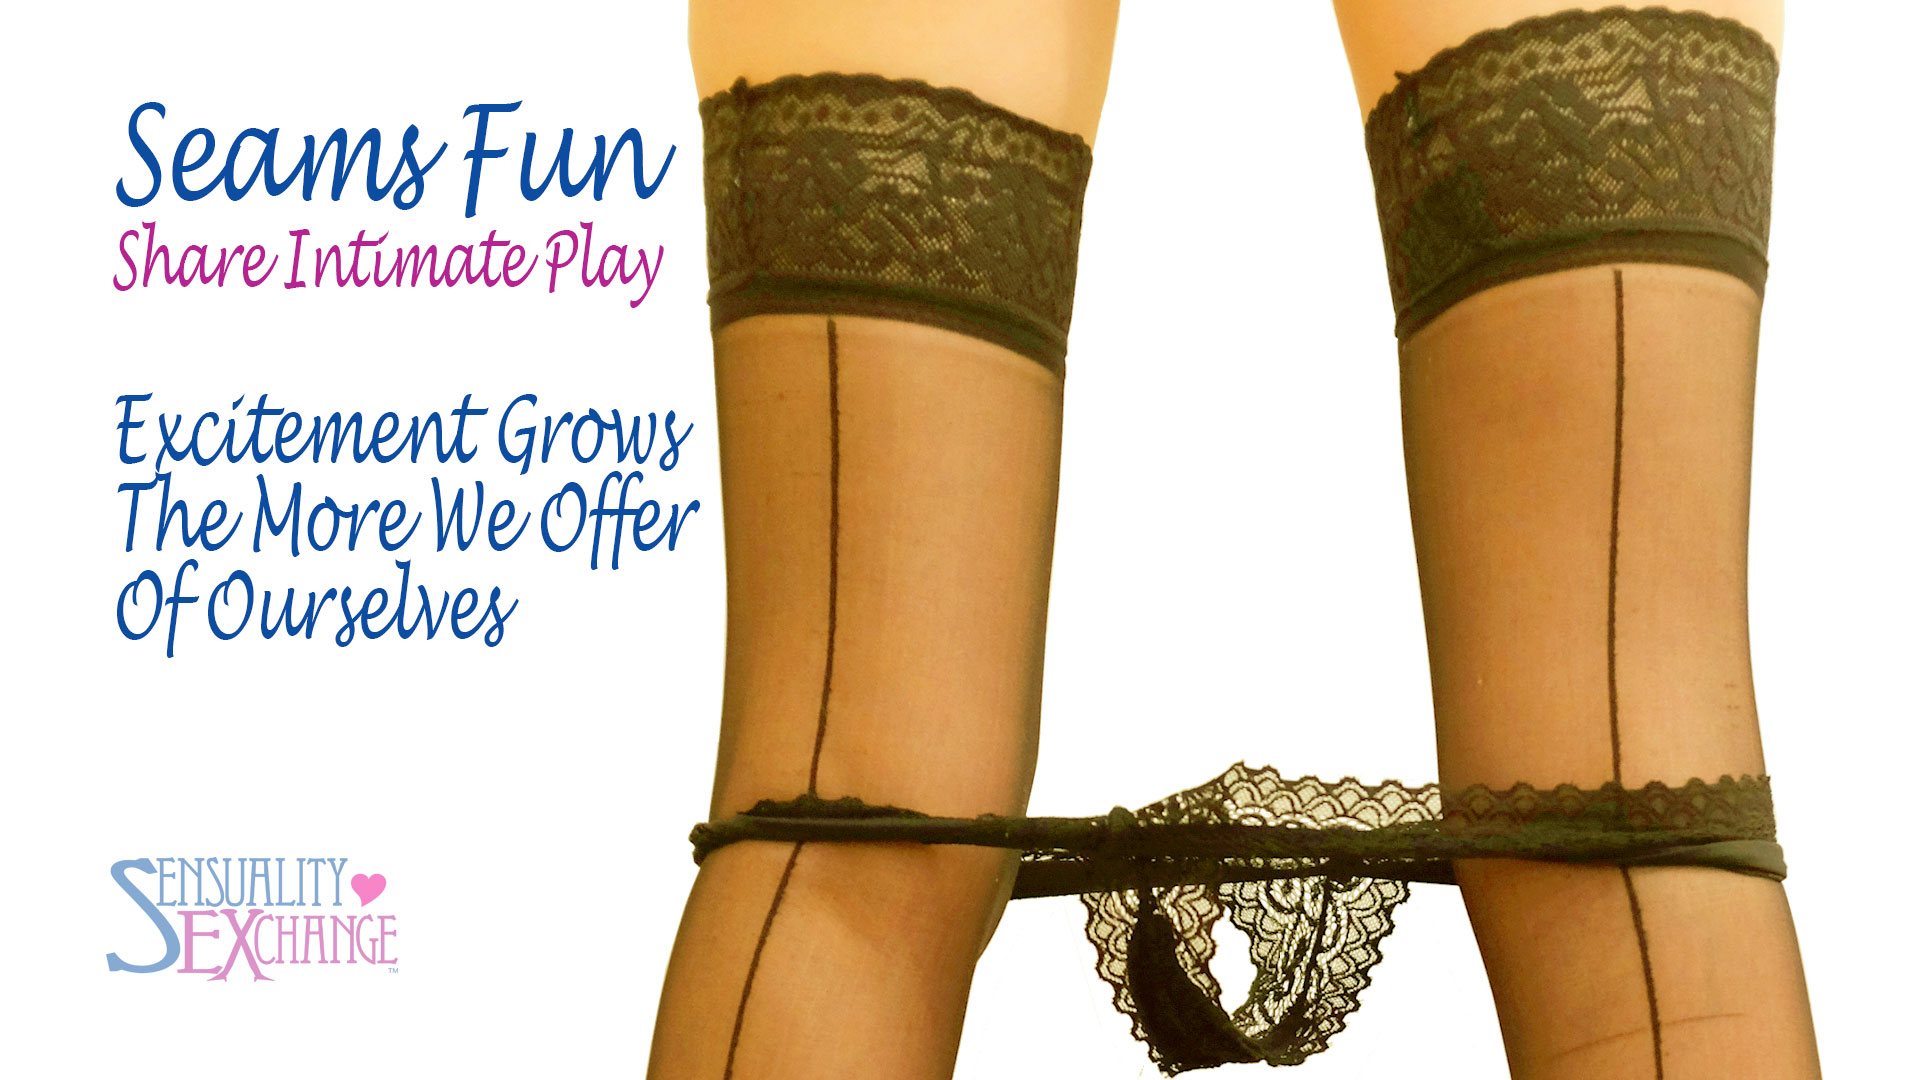 Seams Fun - Share Intimate Play